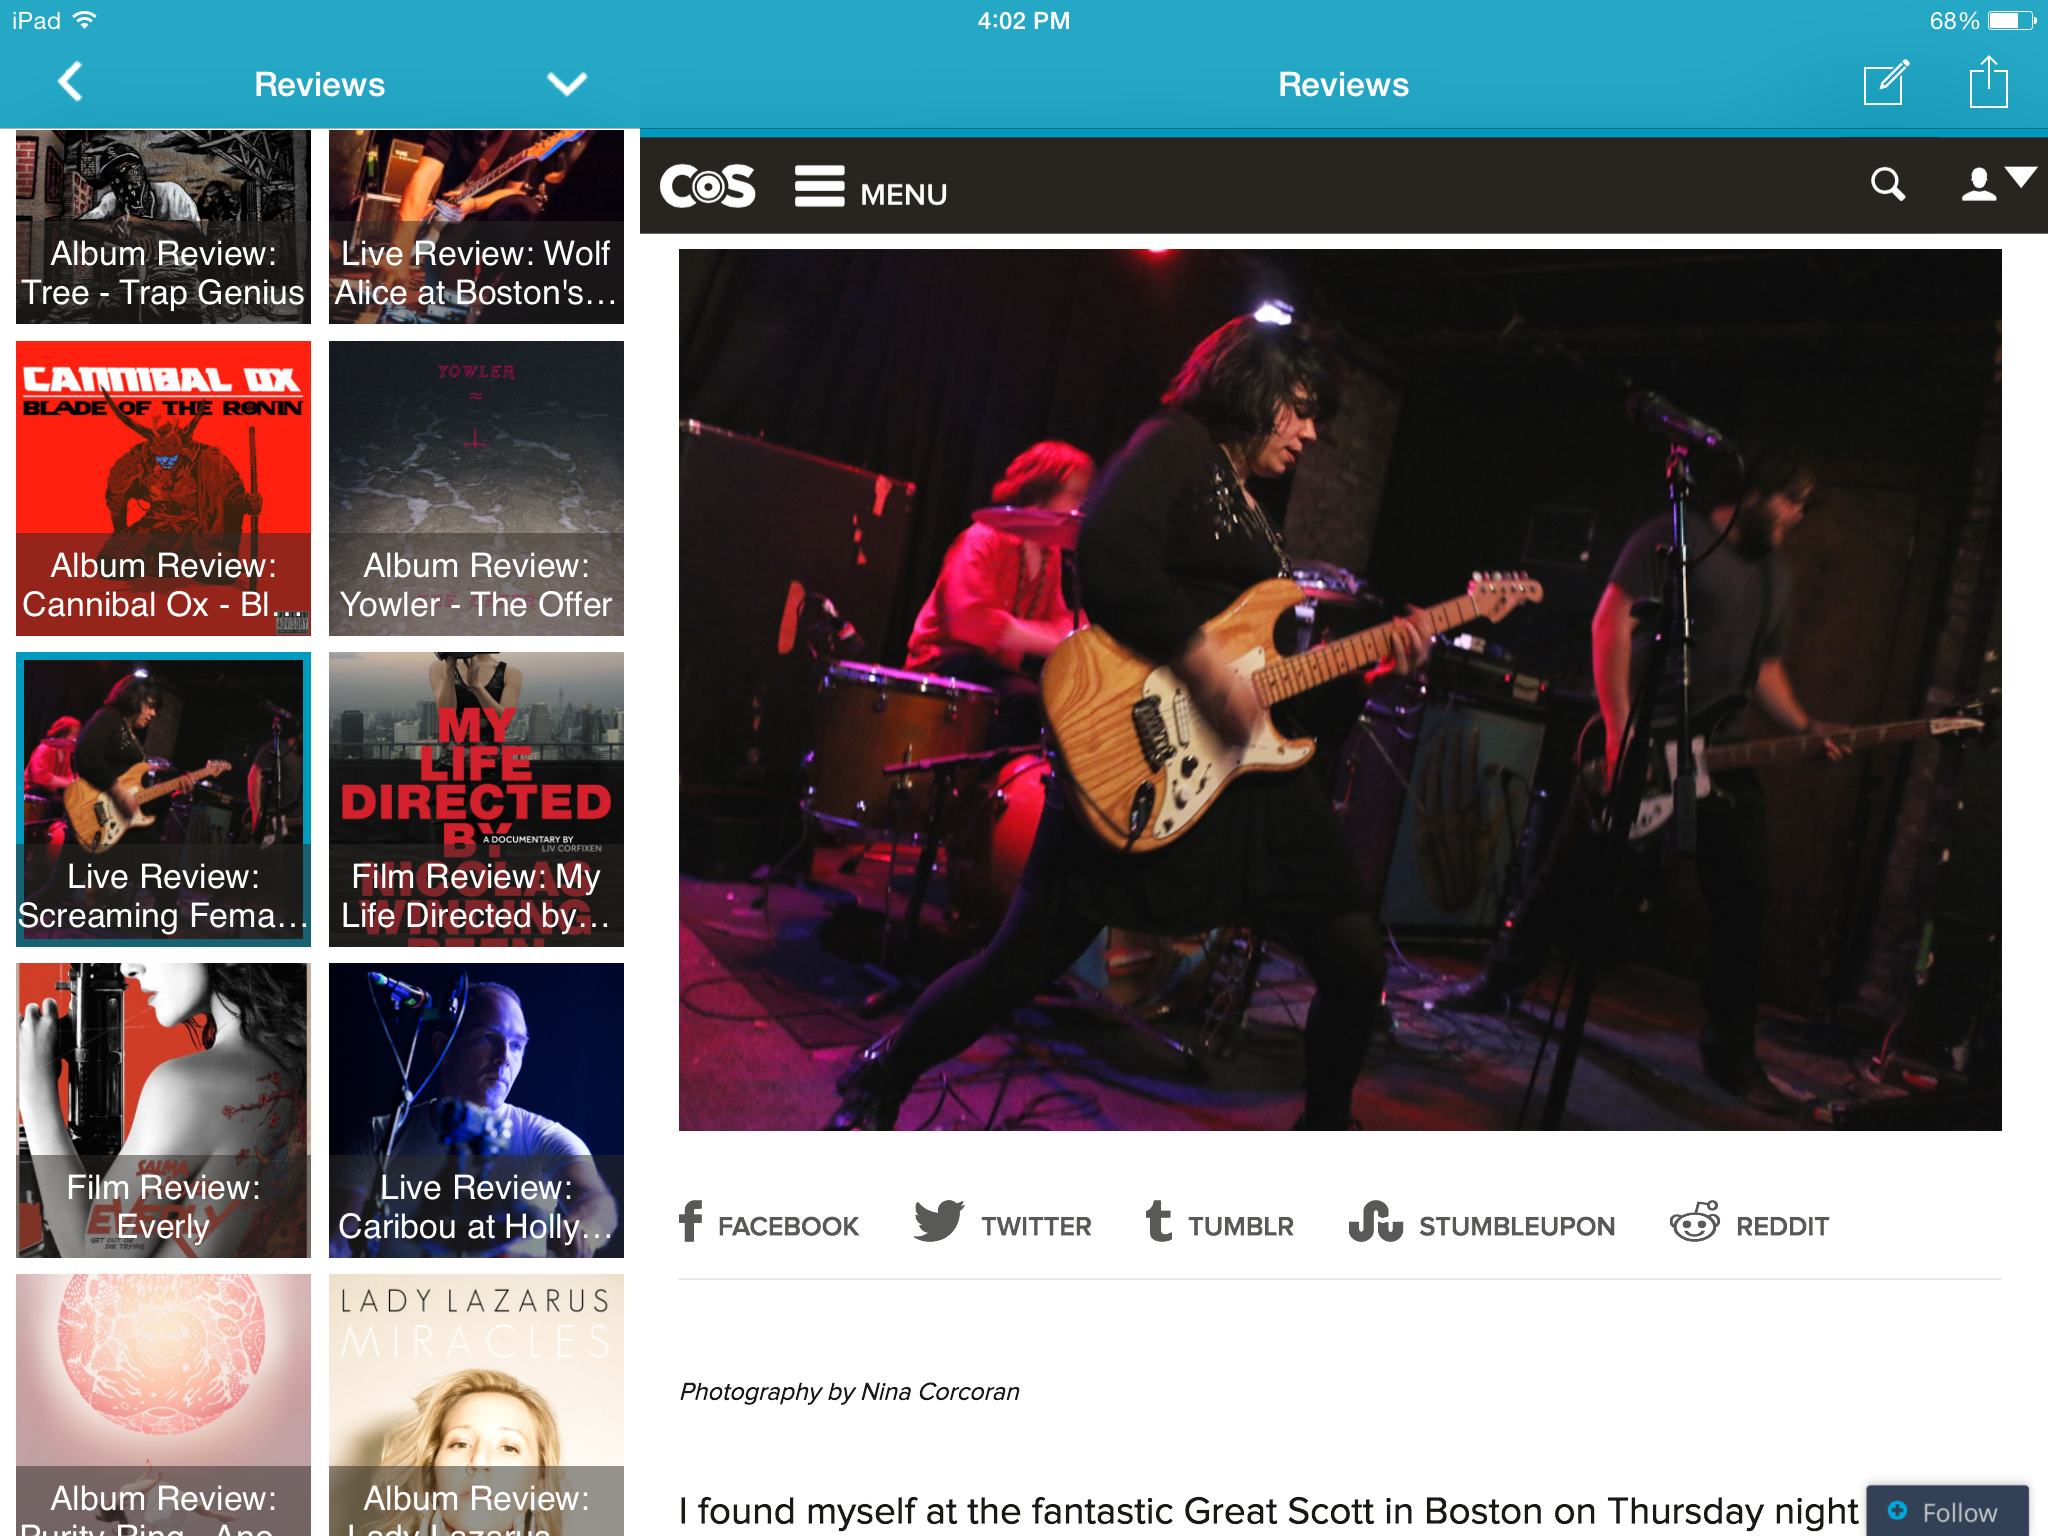 image1 Consequence of Sounds new mobile app is now available on iPhone, iPad, and Android